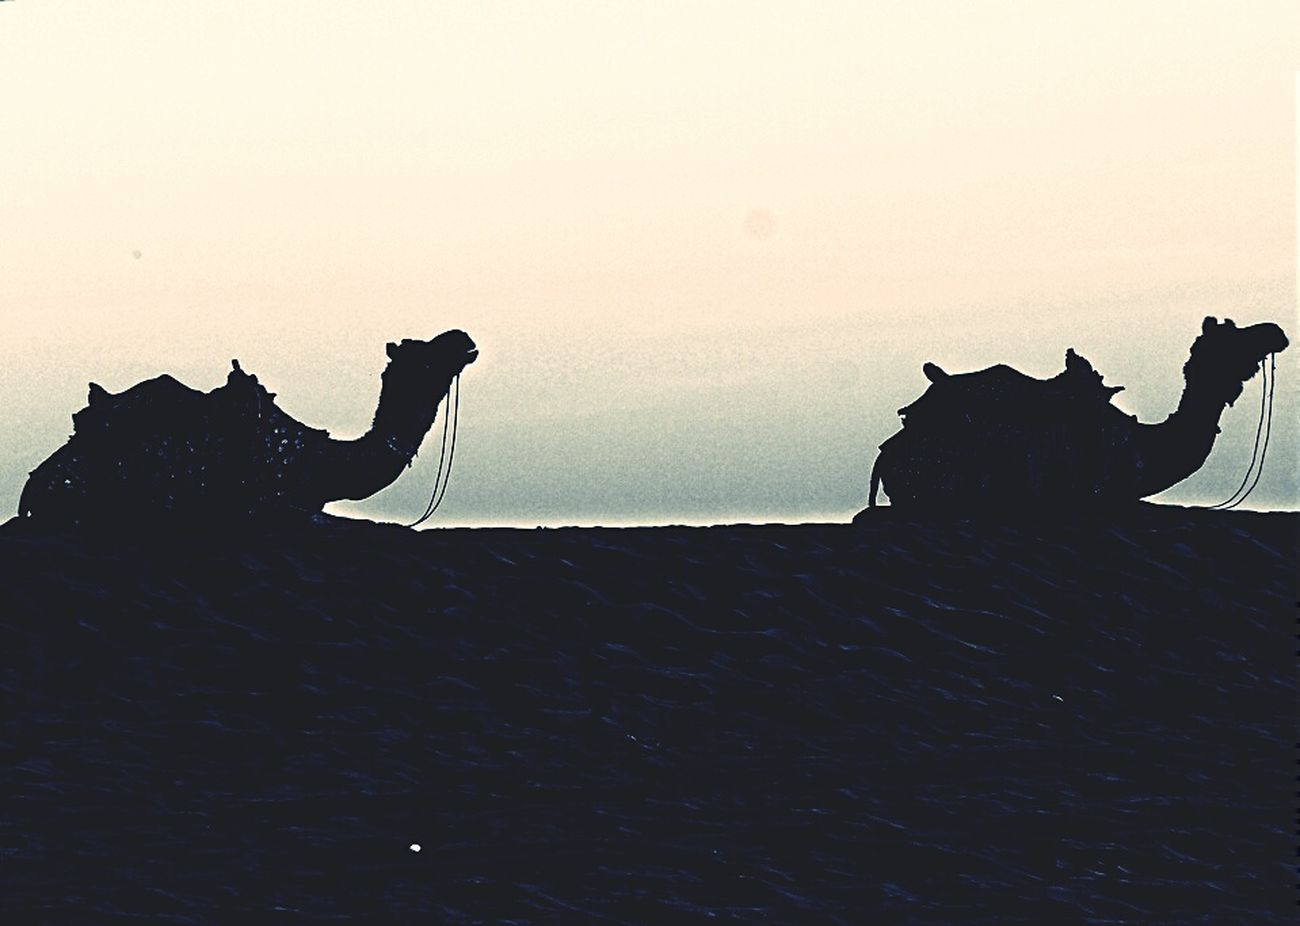 Rajasthan Tourism Camel Desert Desertsafari Camel Ride Amazing Experience First Eyeem Photo